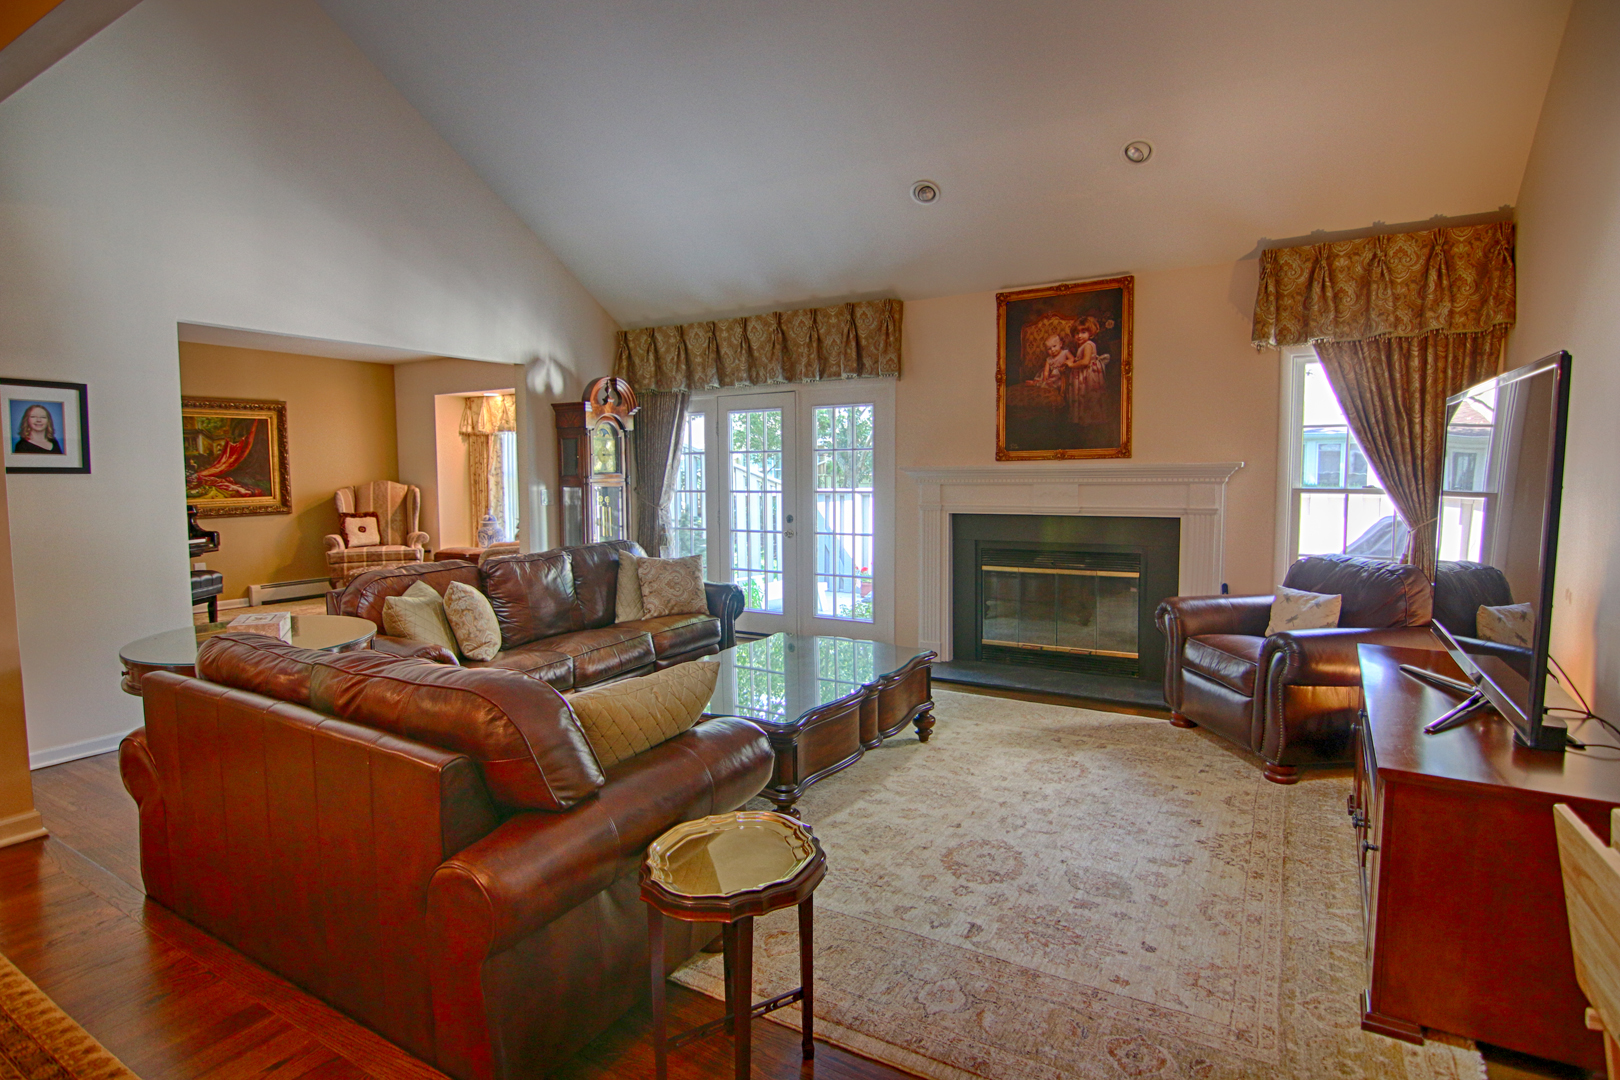 11 Dexter Dr North, The Barons At Basking Ridge - Townhome for Sale ...